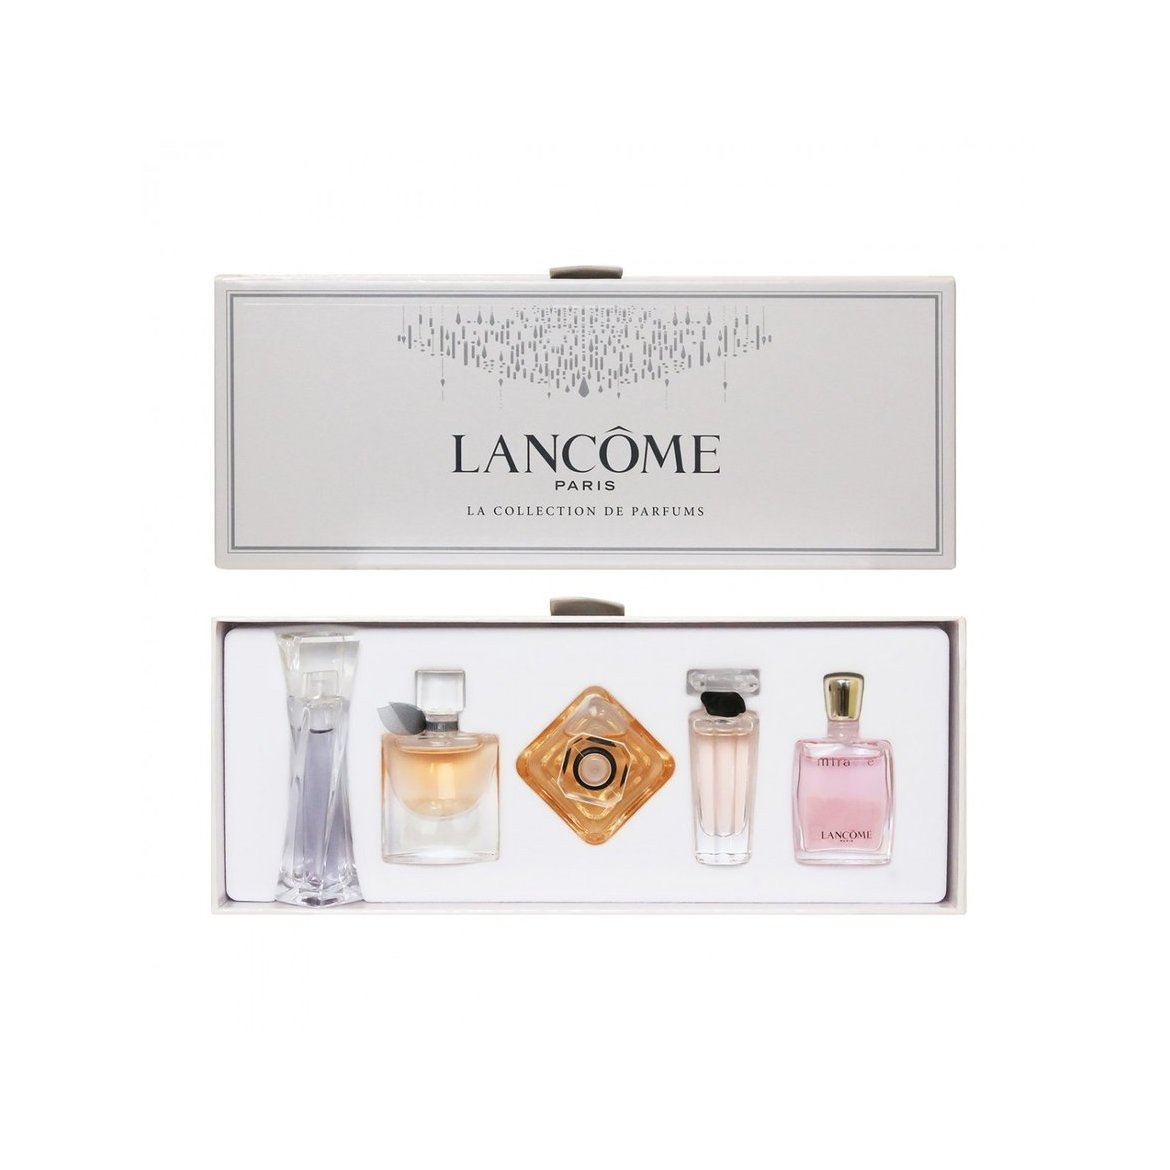 Le Collection Set Miniatuur Lancome De Gift Parfums 6bgvI7yfY